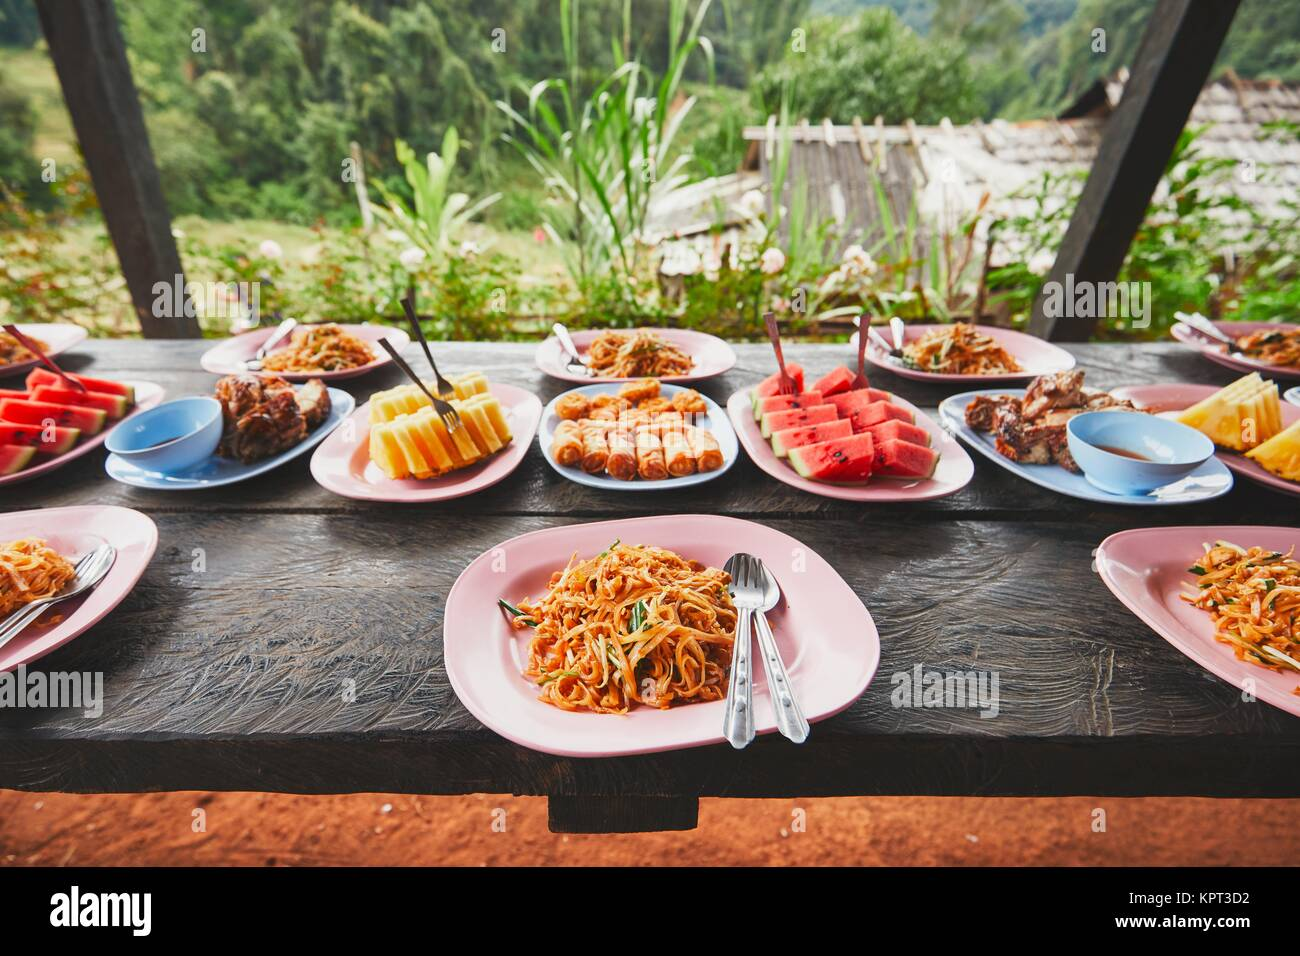 Lunch in the middle of the jungle. The table full of foods and fruits. Traditioal Pad Thai, spring rolls, melon - Stock Image